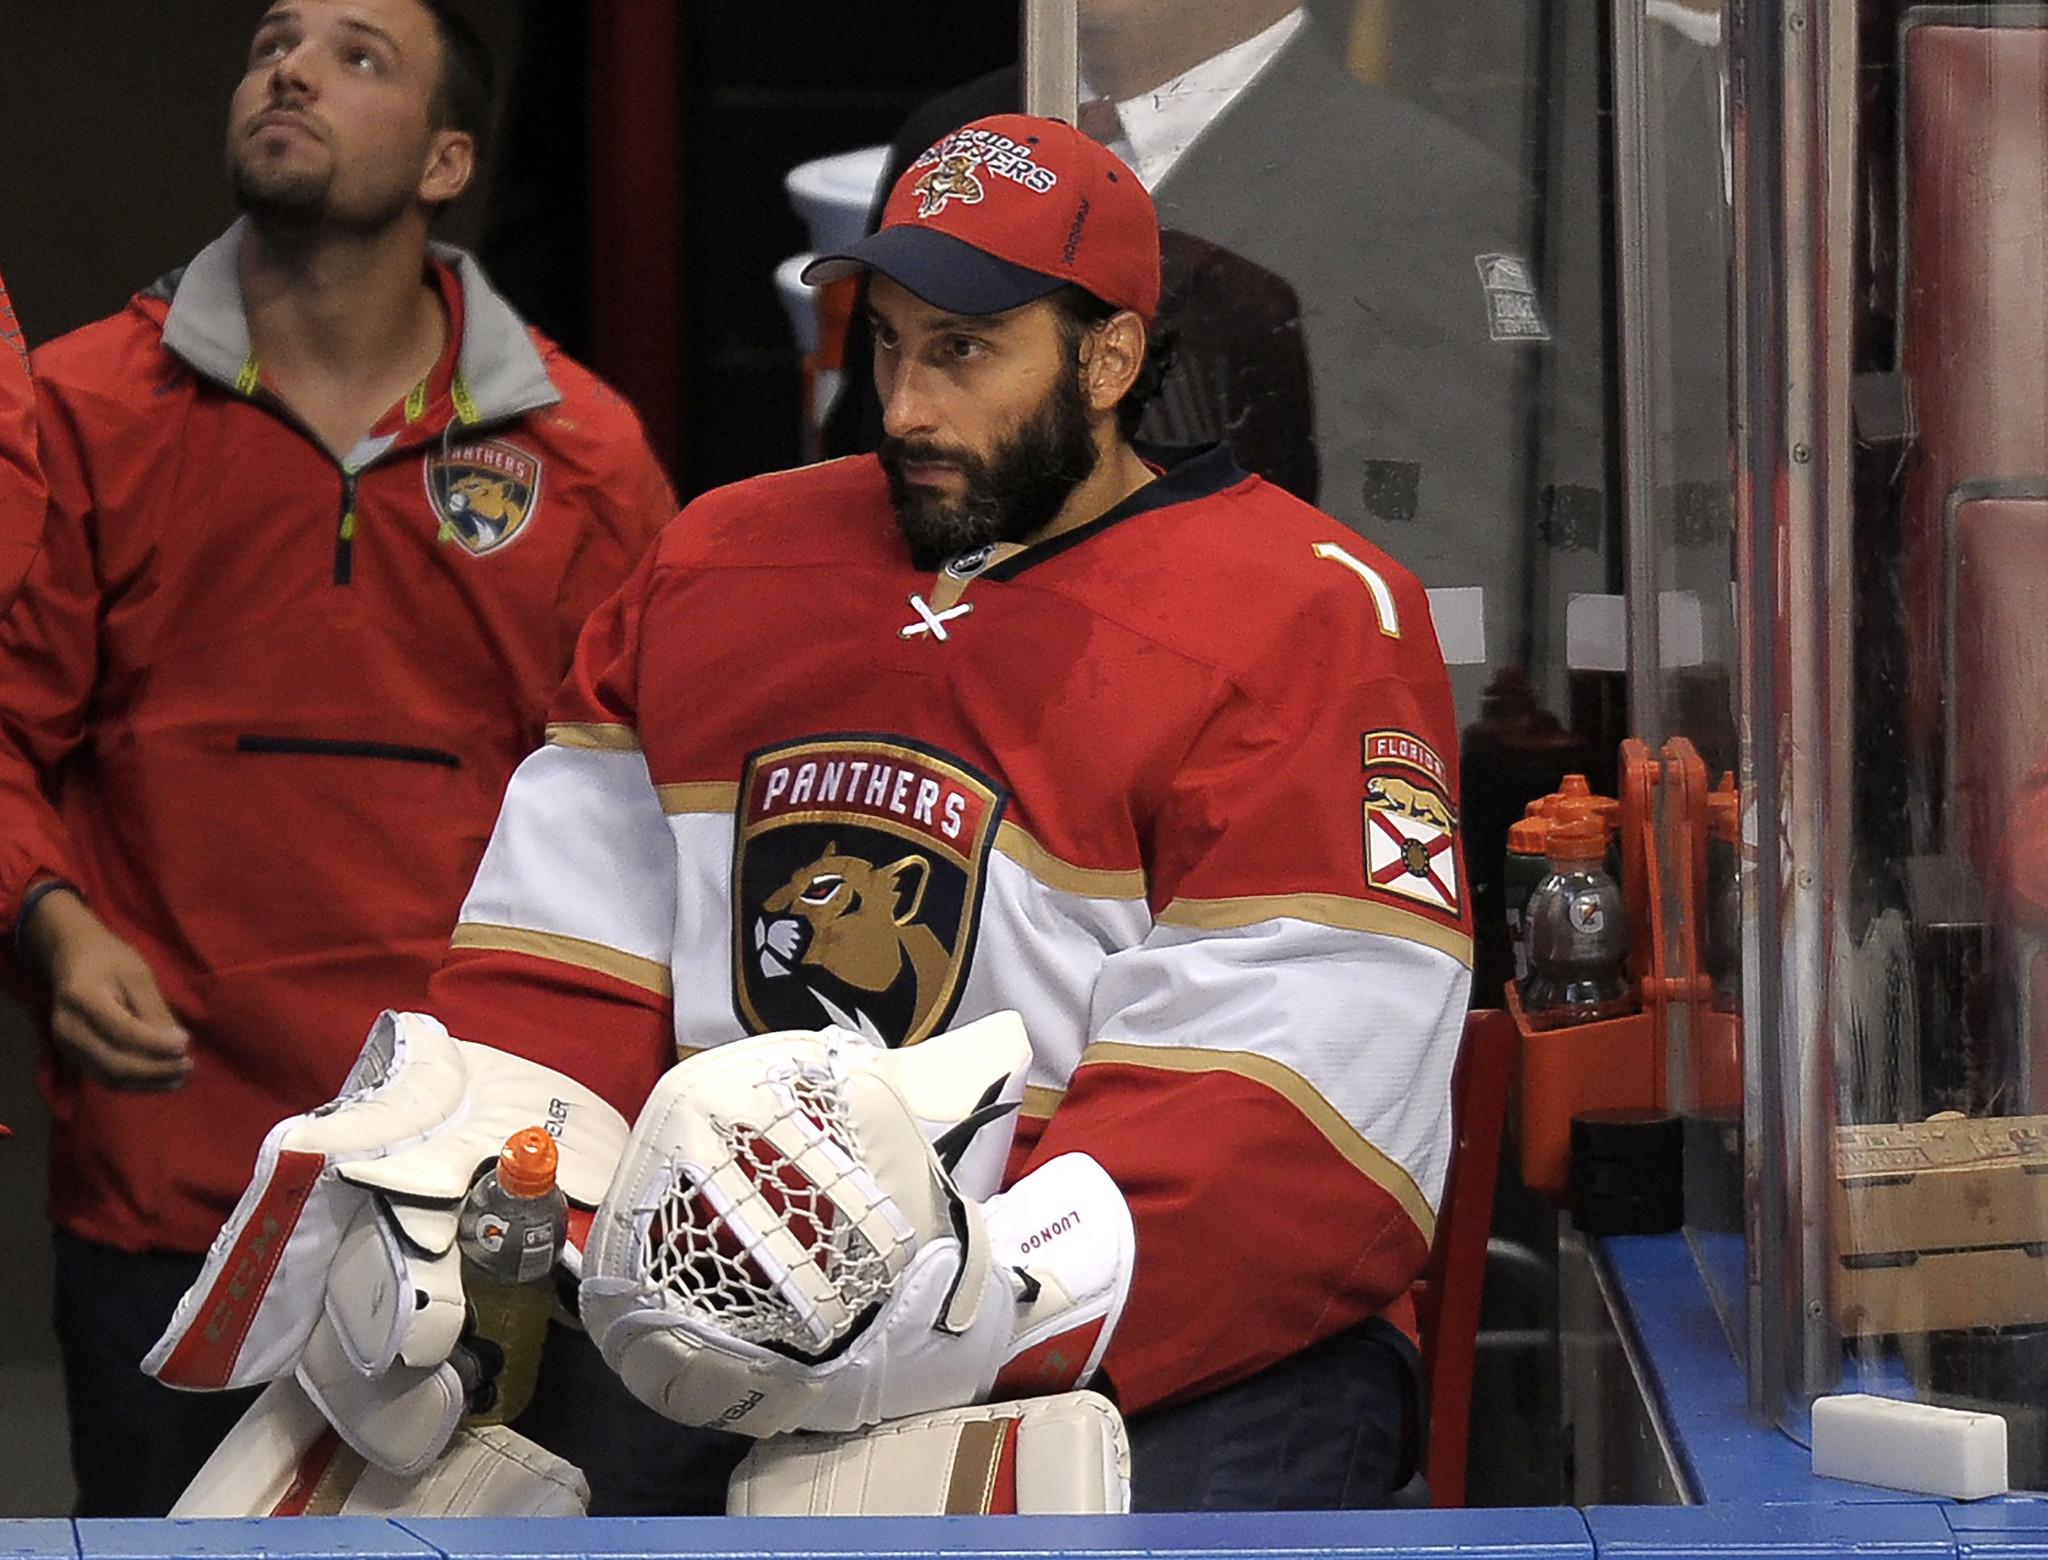 Sfl-roberto-luongo-is-back-on-the-ice-20160927